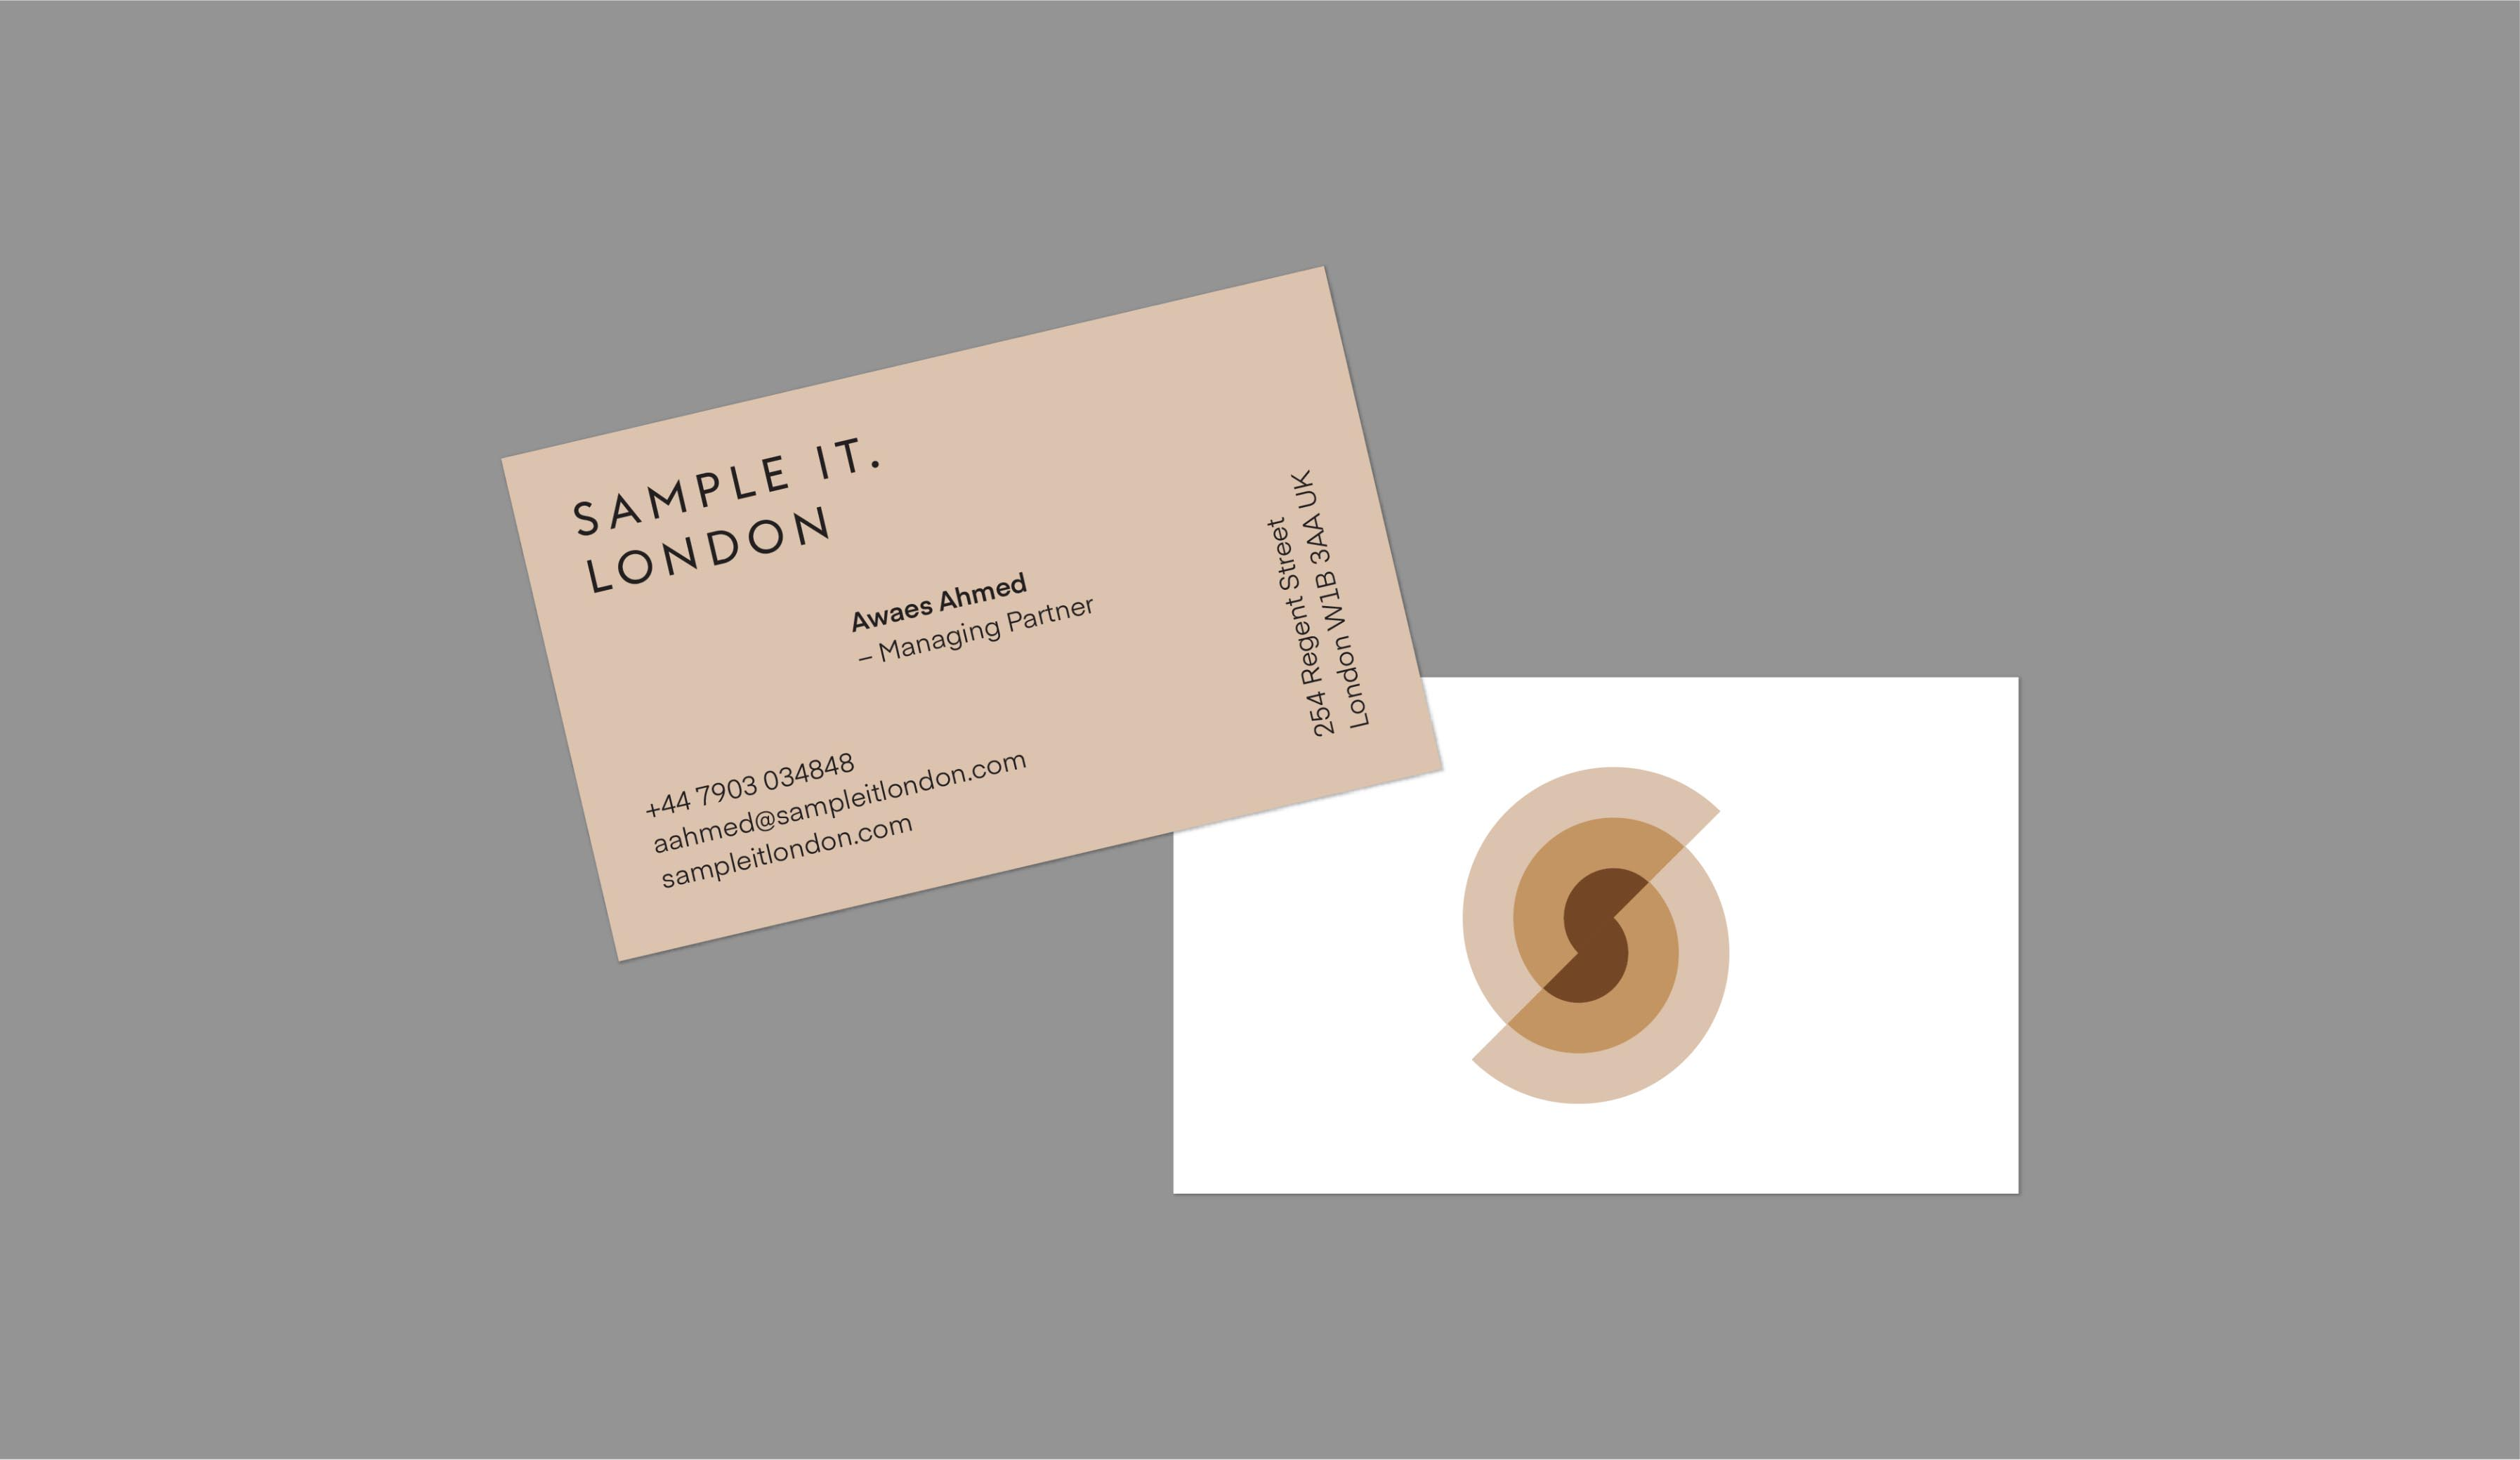 Sample It. London brand identity and packaging design